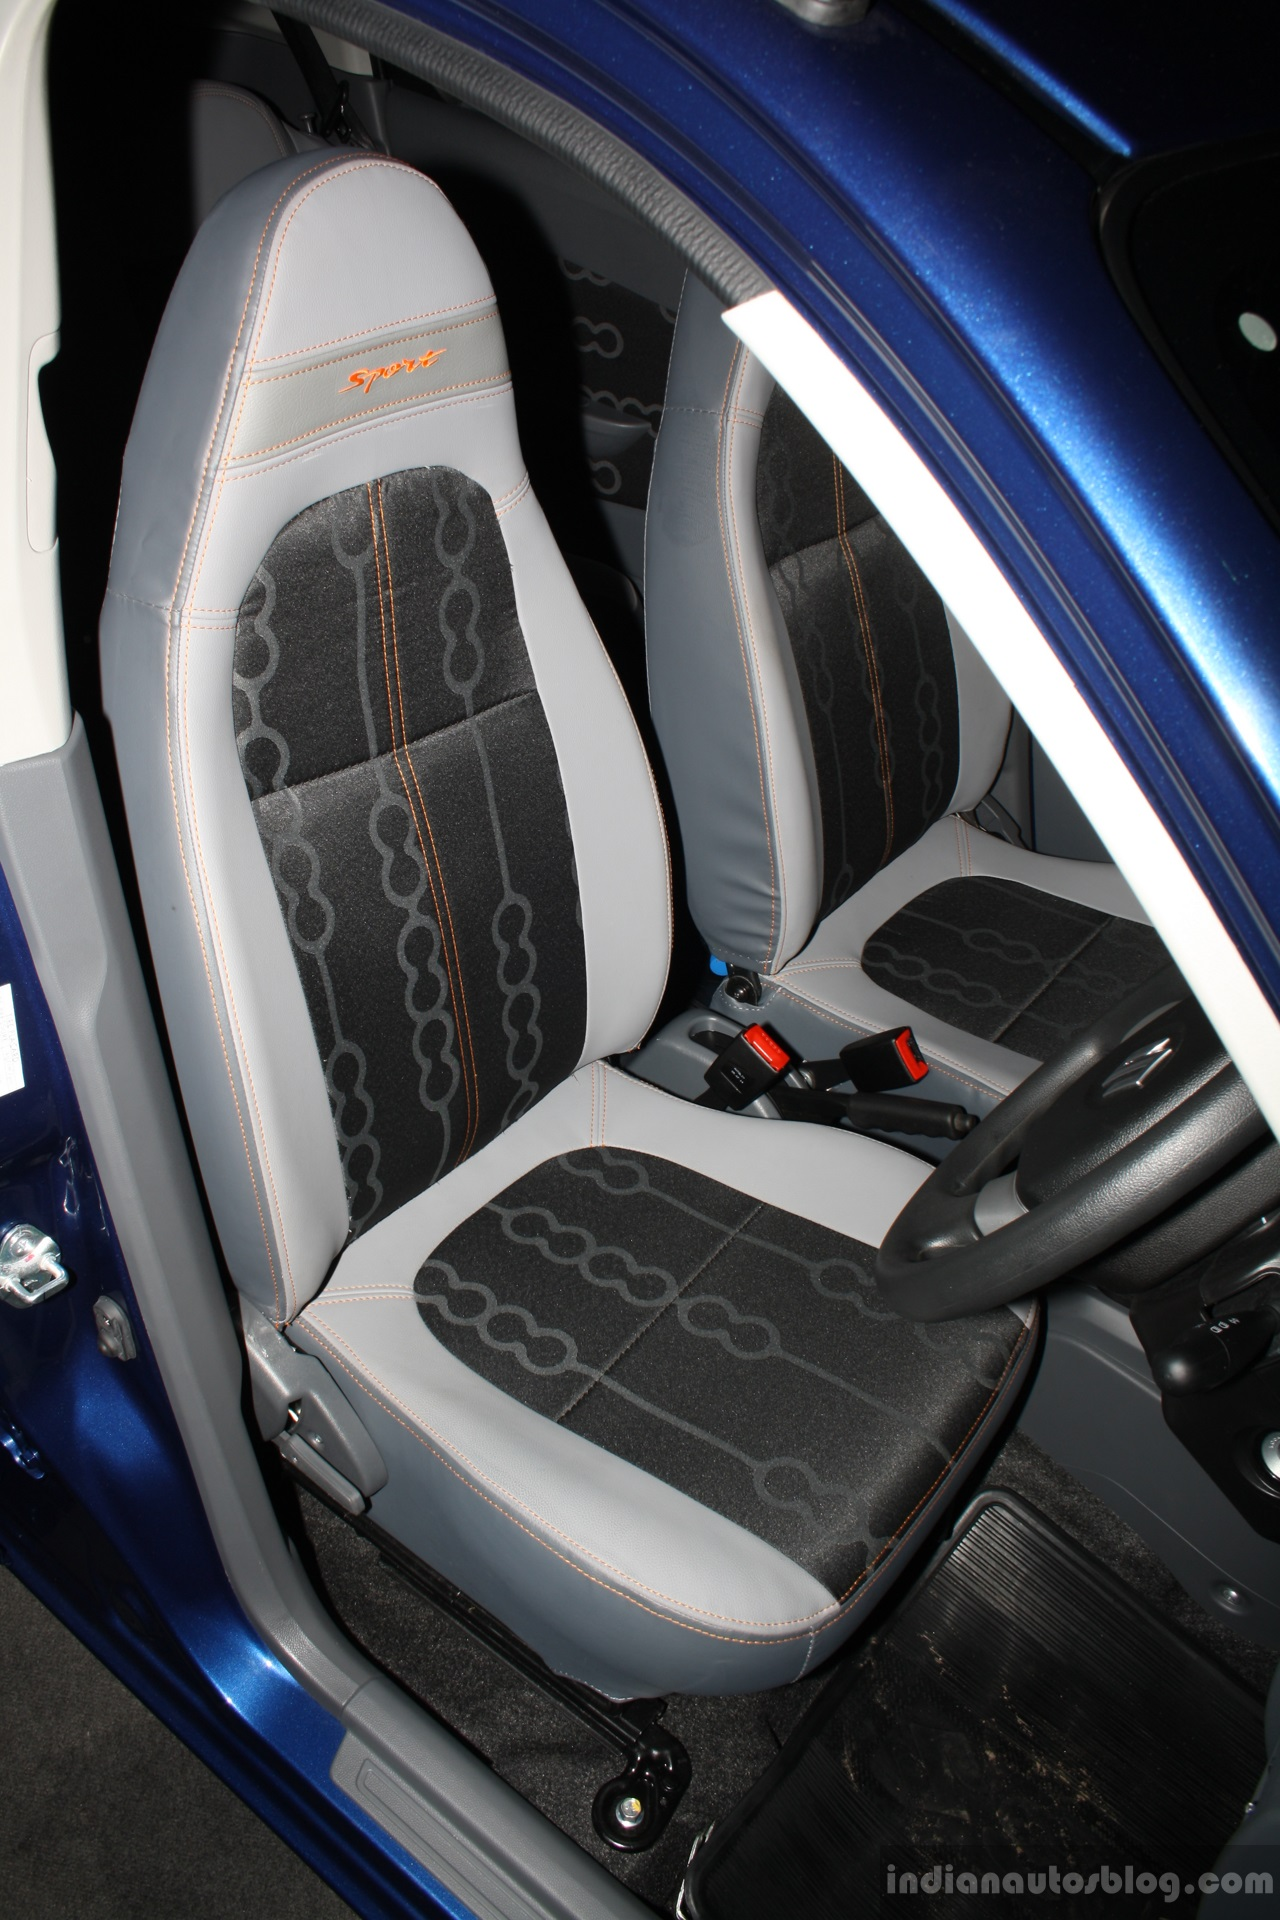 Suzuki Alto 800 Sport Edition Seats At The 2014 Colombo Motor Show Sri Lanka